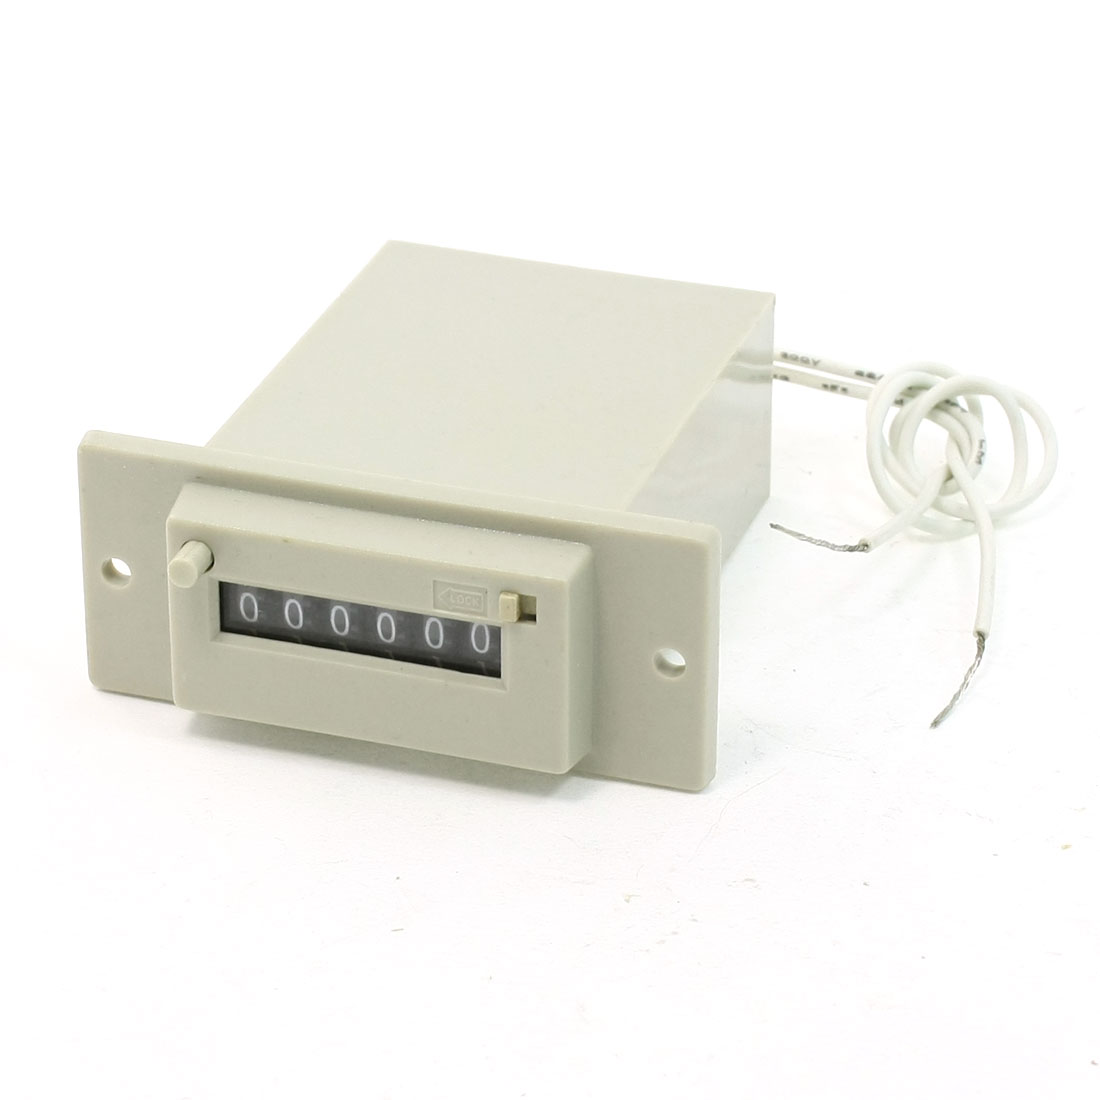 CSK6-DKW DC 24V 6 Digits 2 White Wire Lockable Electronmagnetic Counter